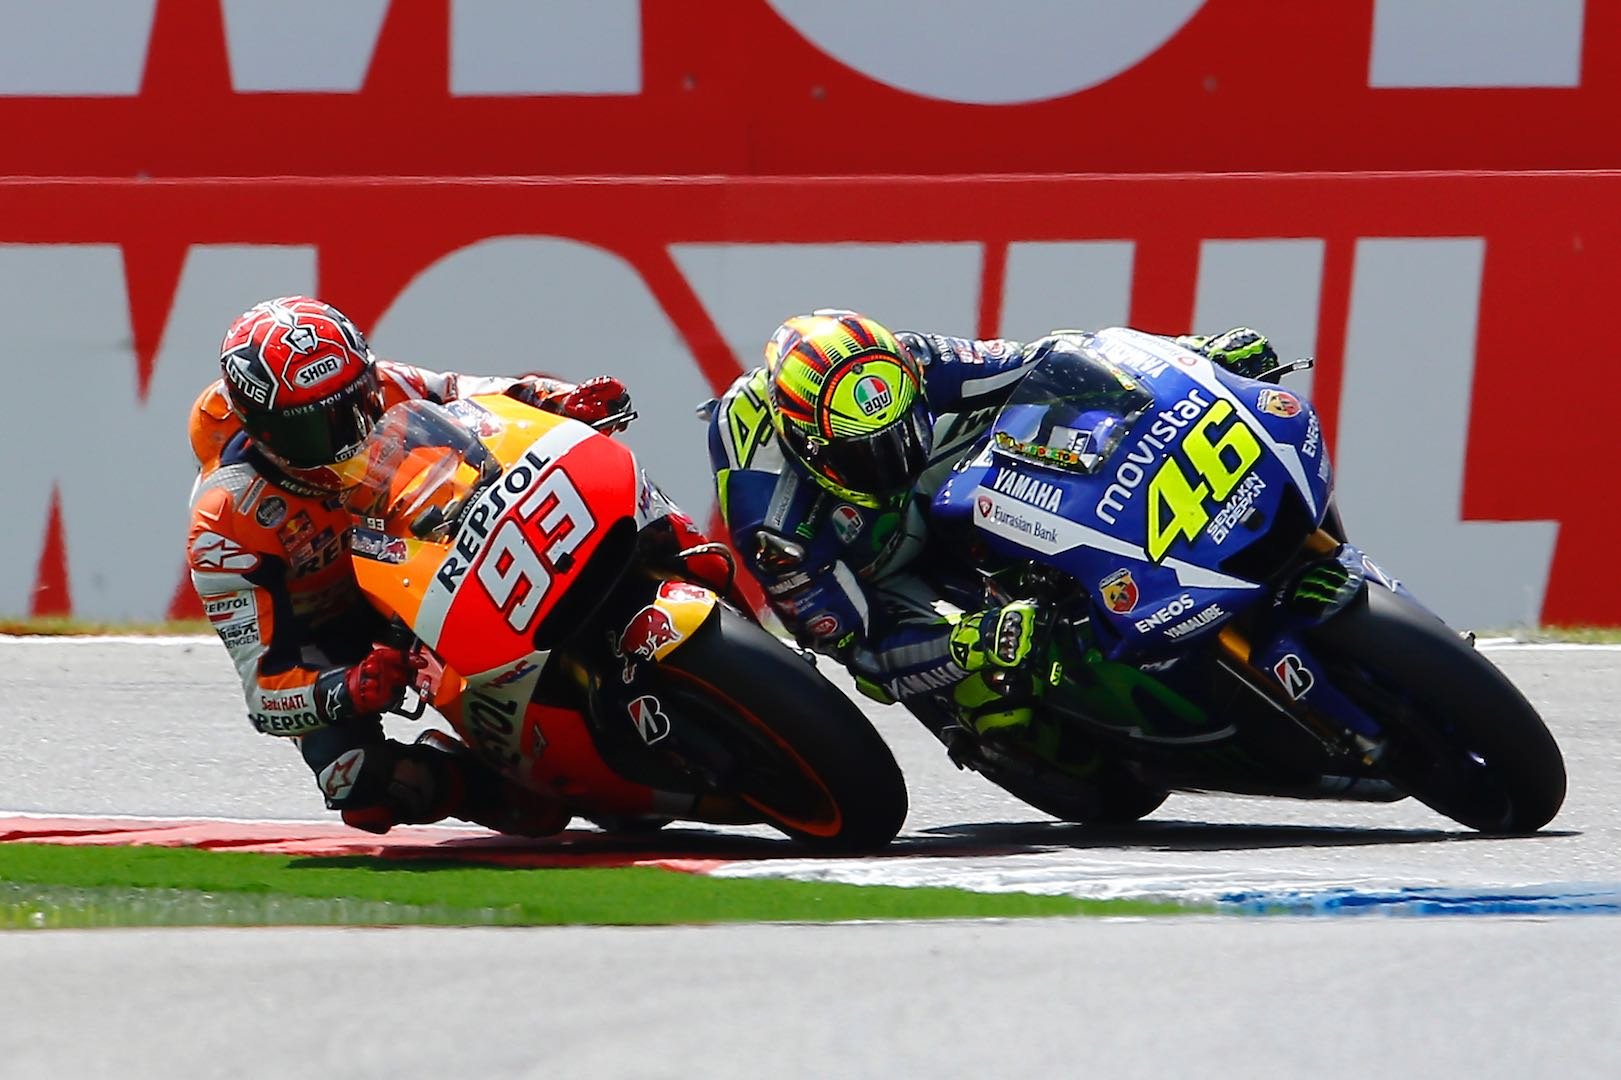 2018 motogp tv schedule us race times broadcast live on television. Black Bedroom Furniture Sets. Home Design Ideas